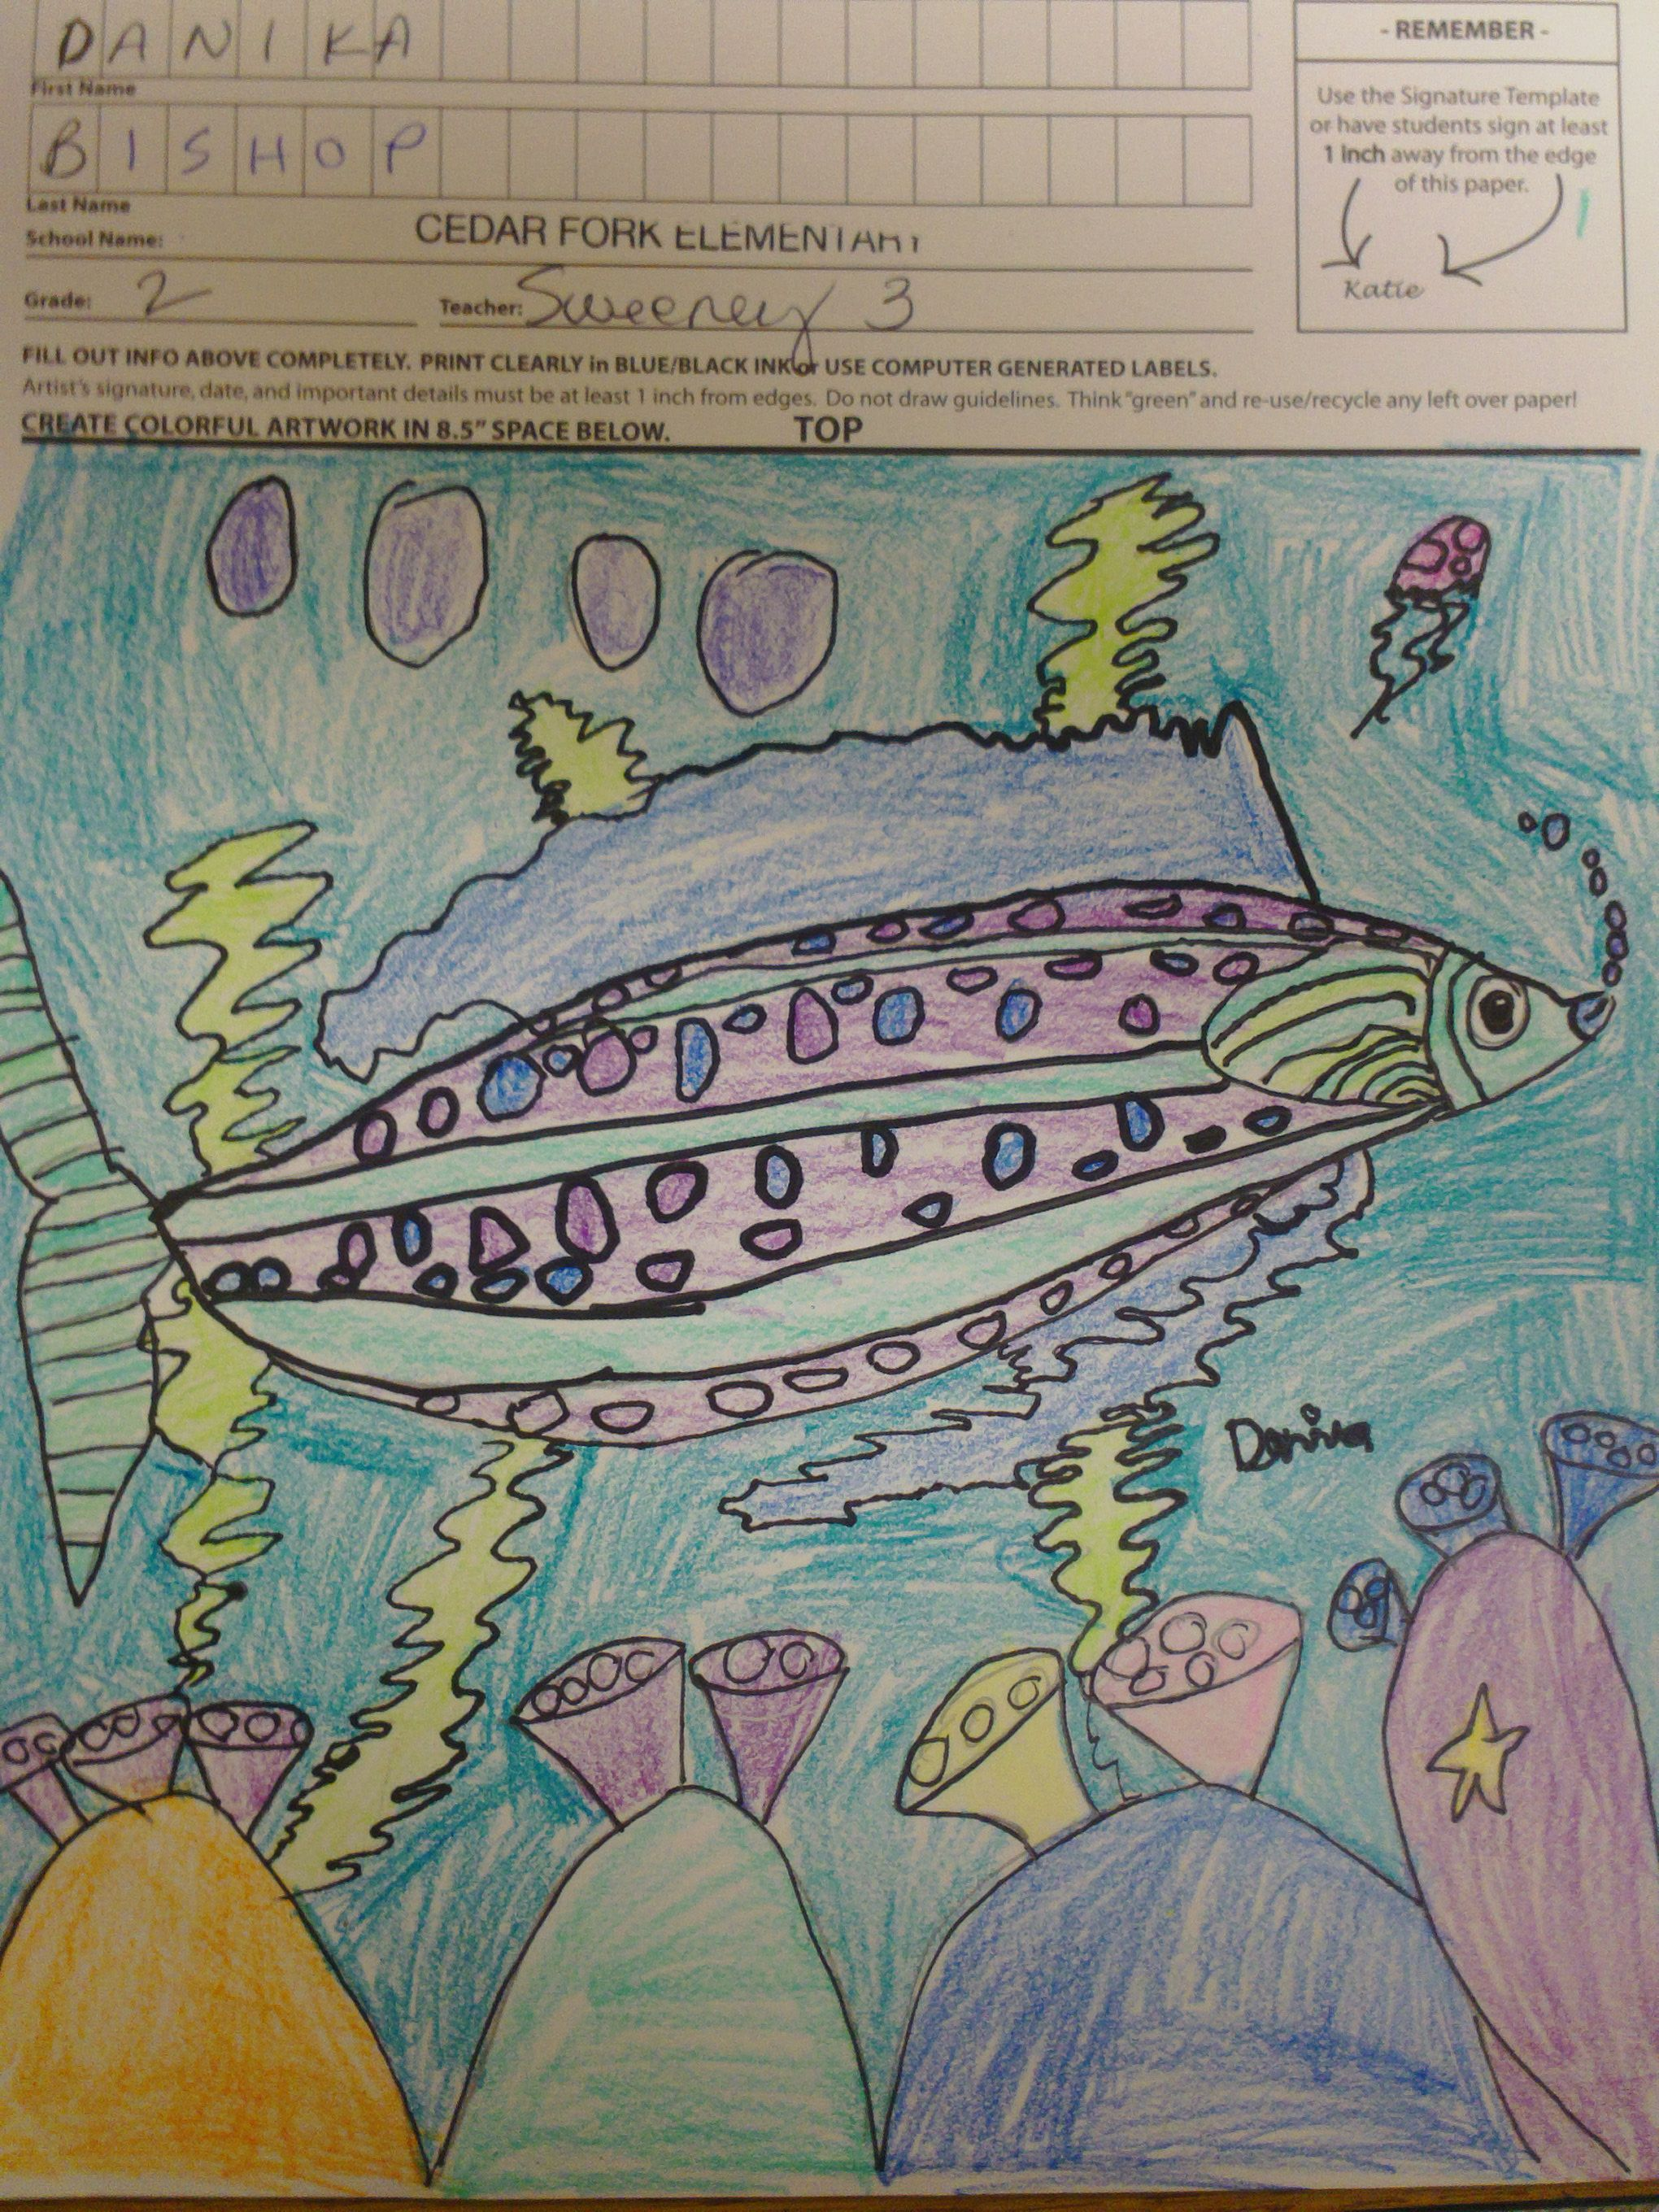 Students Learned About The Endangered Coral Reef System